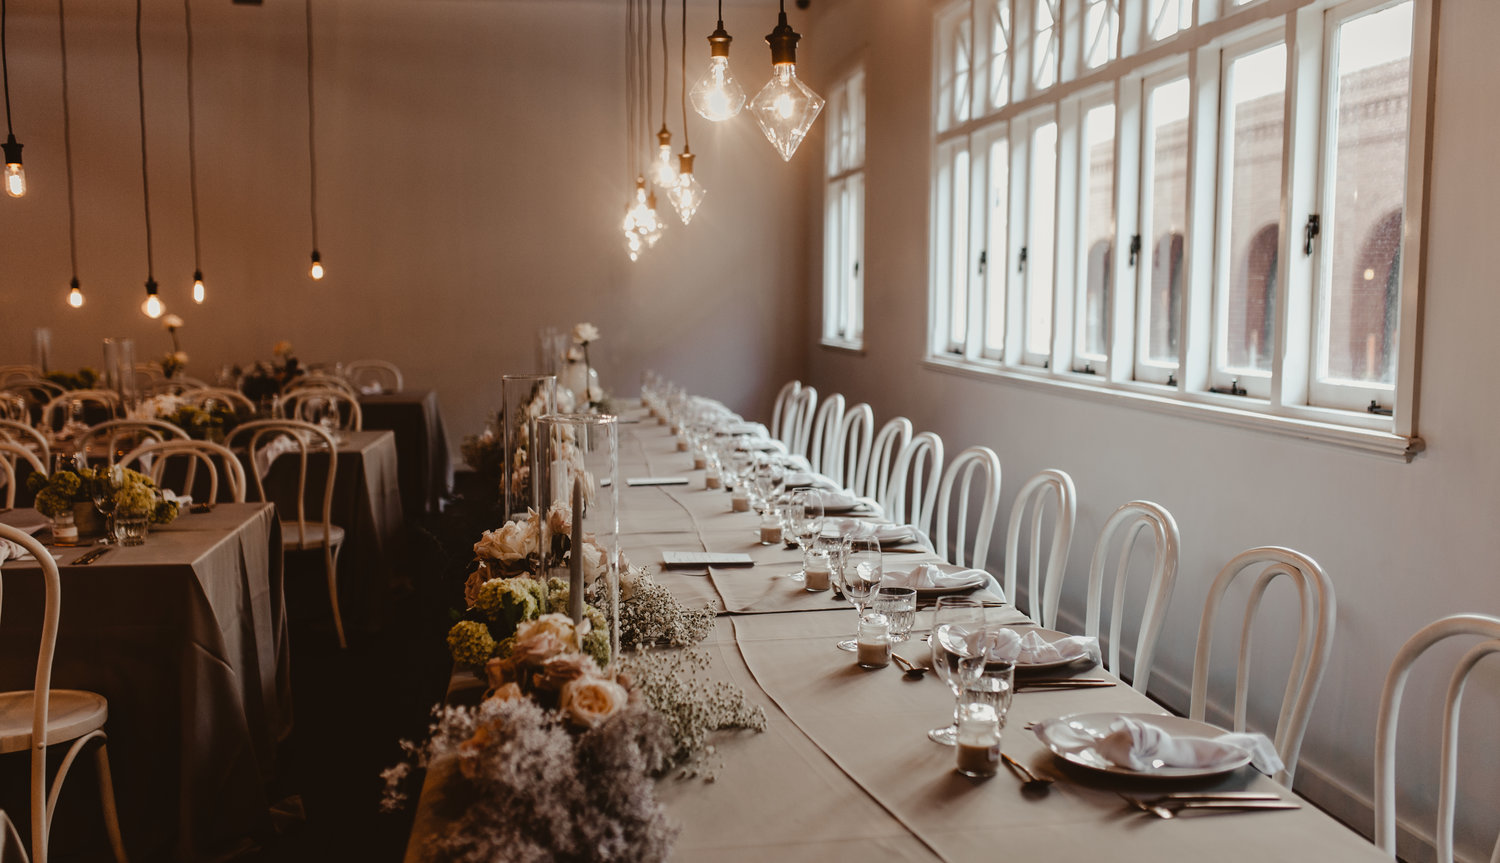 stevie elle photography wedding planning stylist brisbane weddings tablescape floral designer